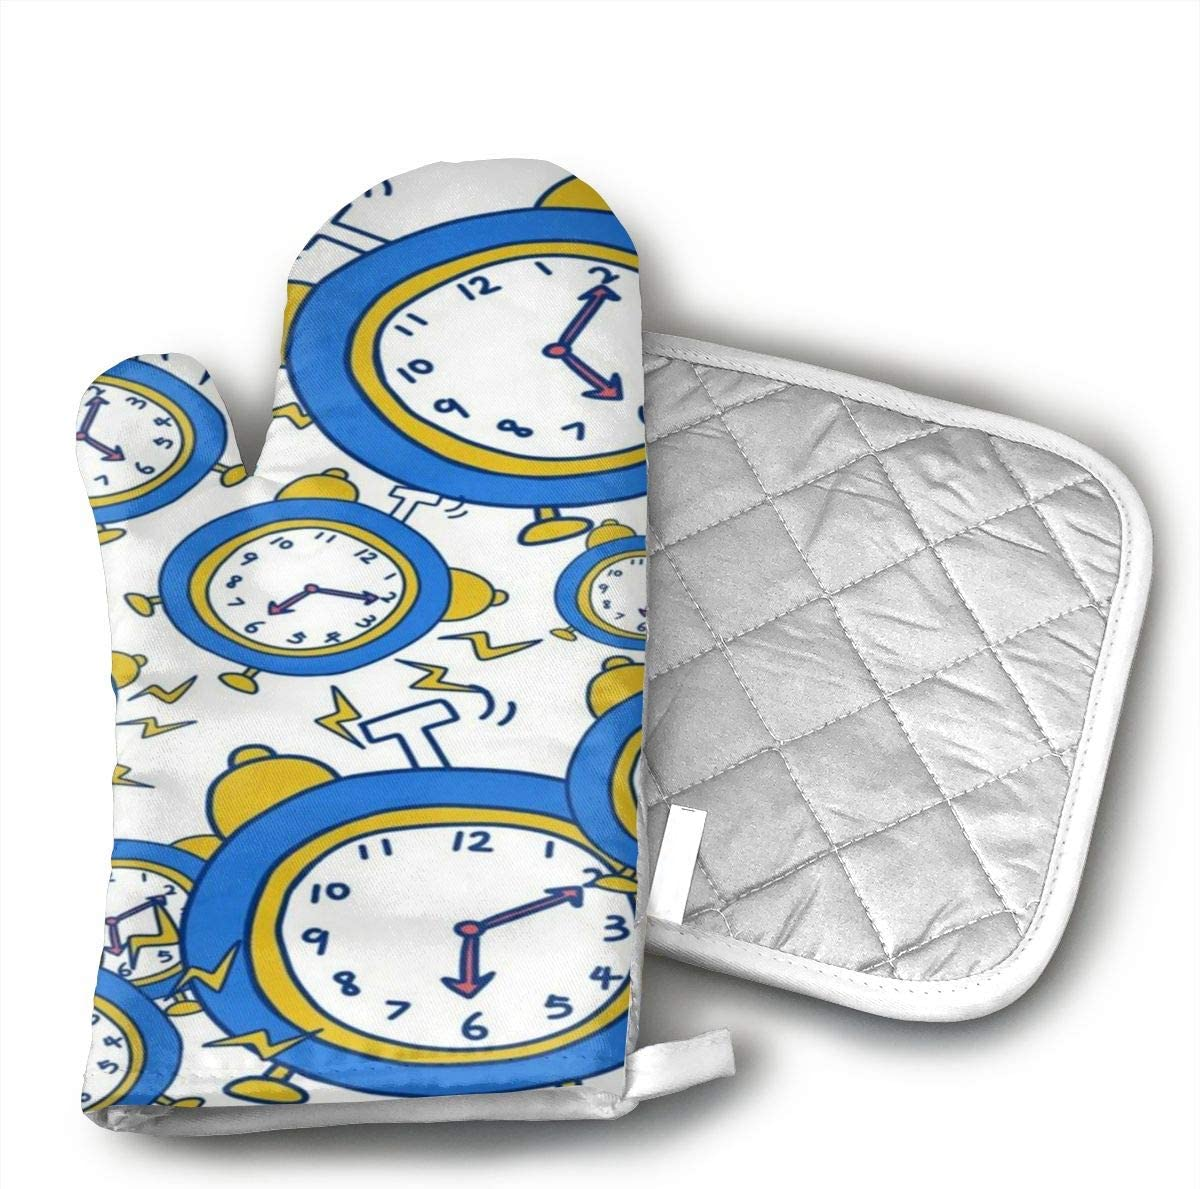 GRSTfsm Alarm Clock Morning Oven Mitt Set Grill and Cook